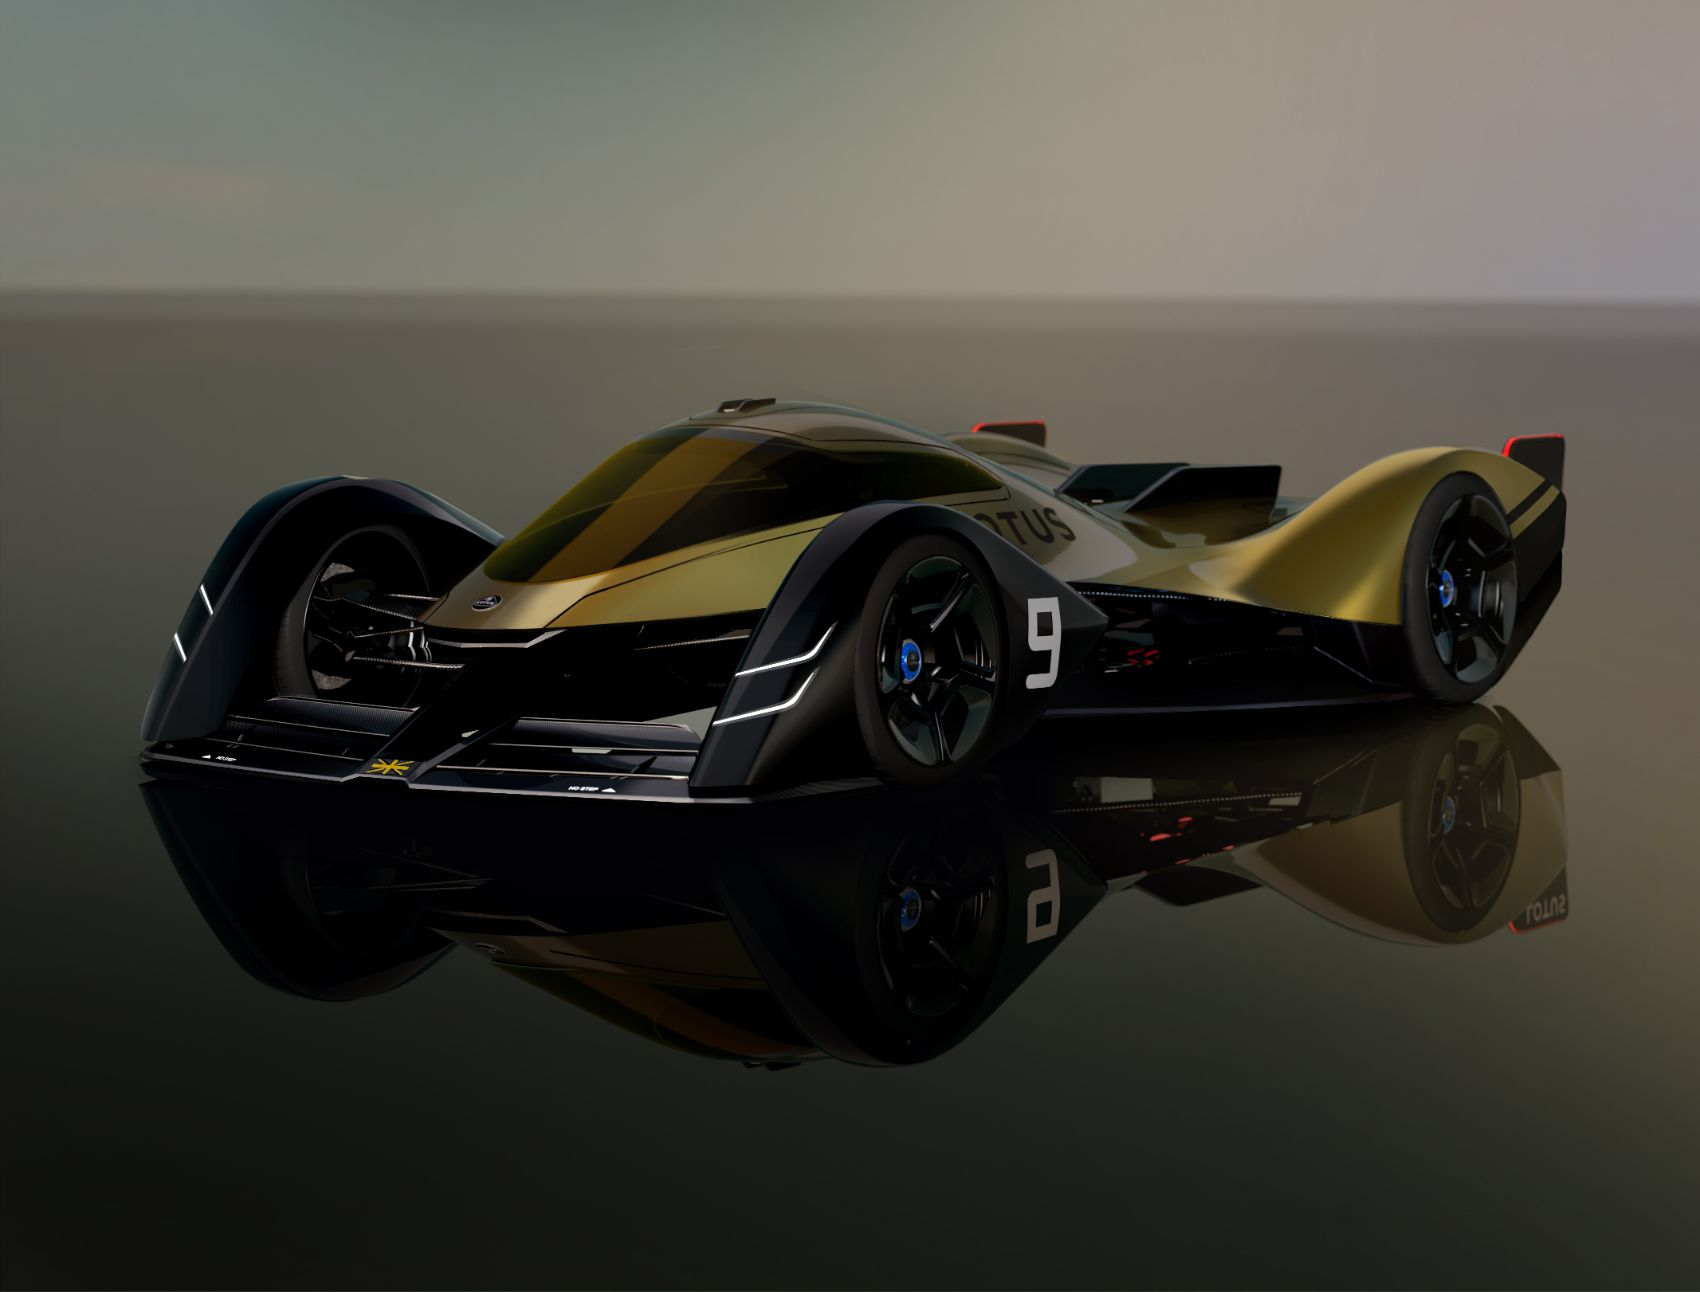 Lotus E-R9: Will This Radical Design Study Become a Reality by 2030?